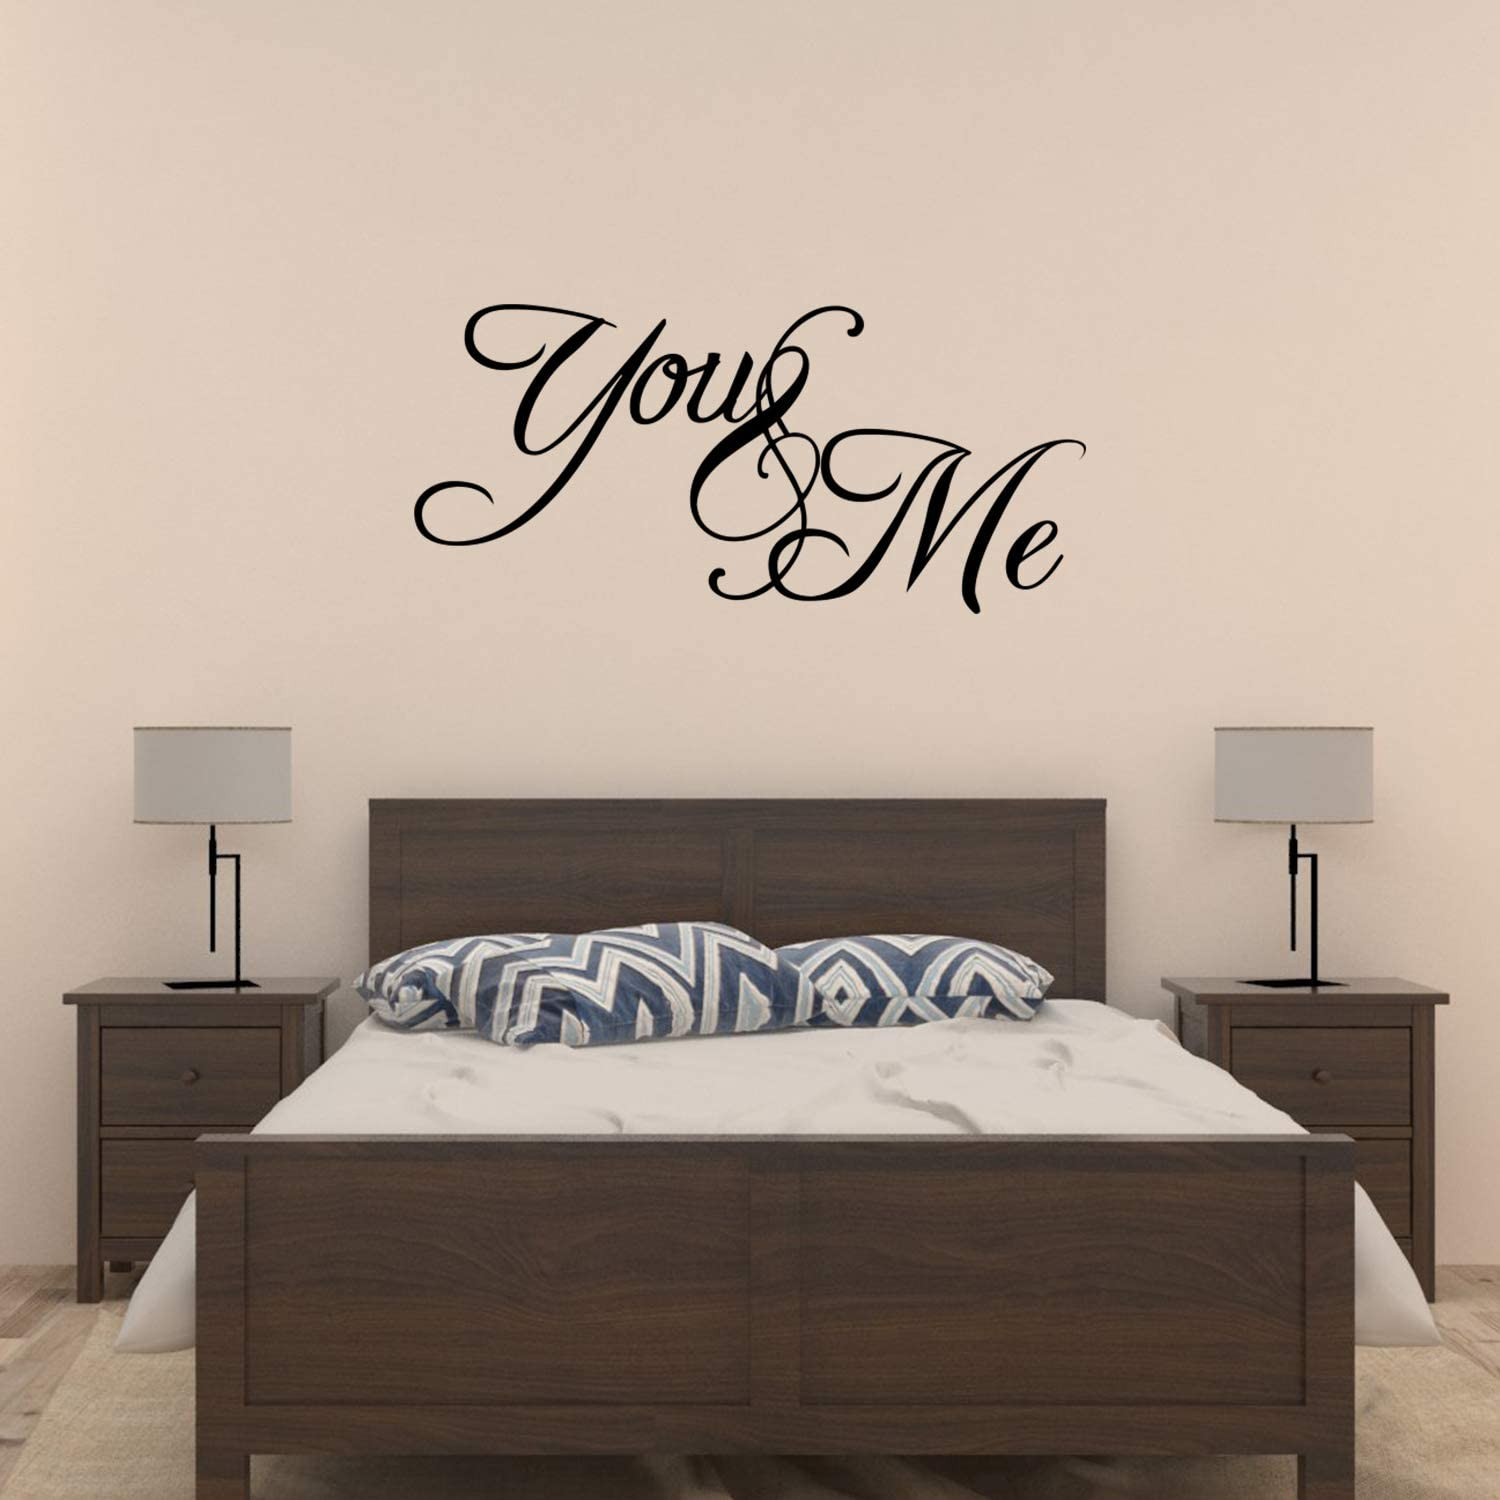 Amazon Com You And Me Bedroom Vinyl Wall Decal Sticker Quote Art Love Saying Home Kitchen